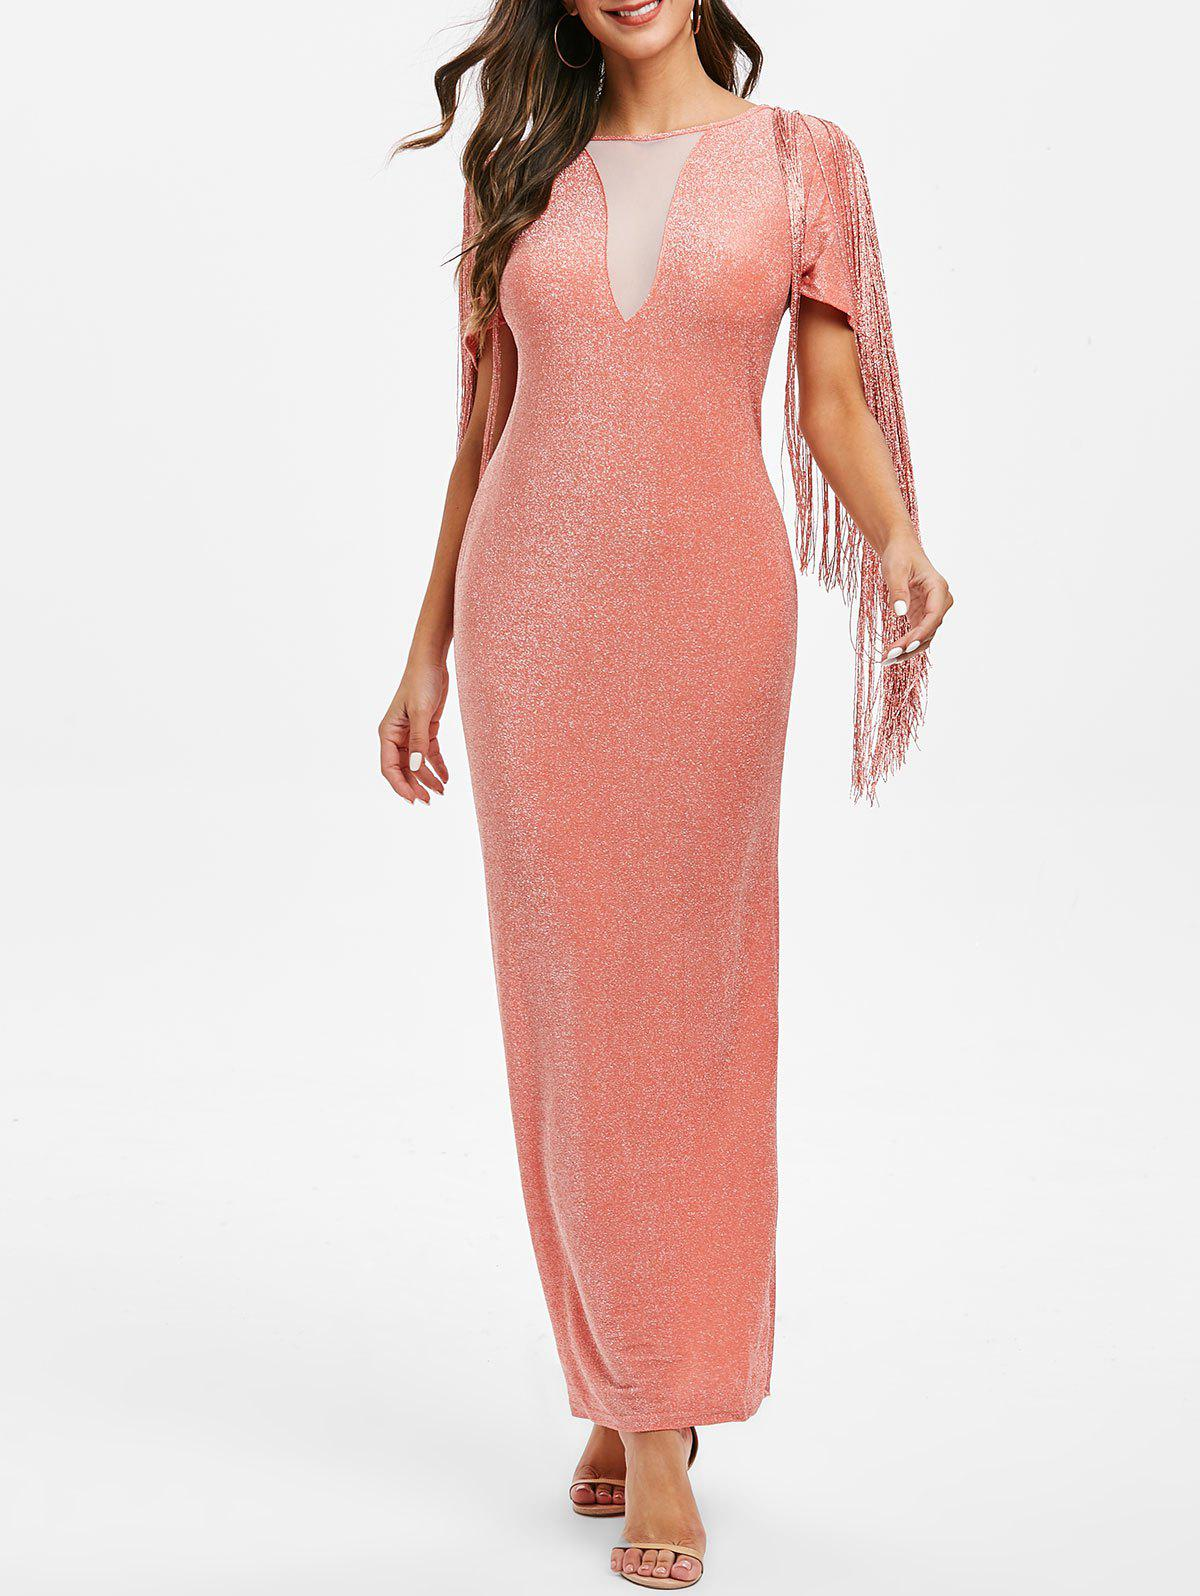 Glitter Fringed Mesh Panel Maxi Bodycon Dress - ORANGE PINK S